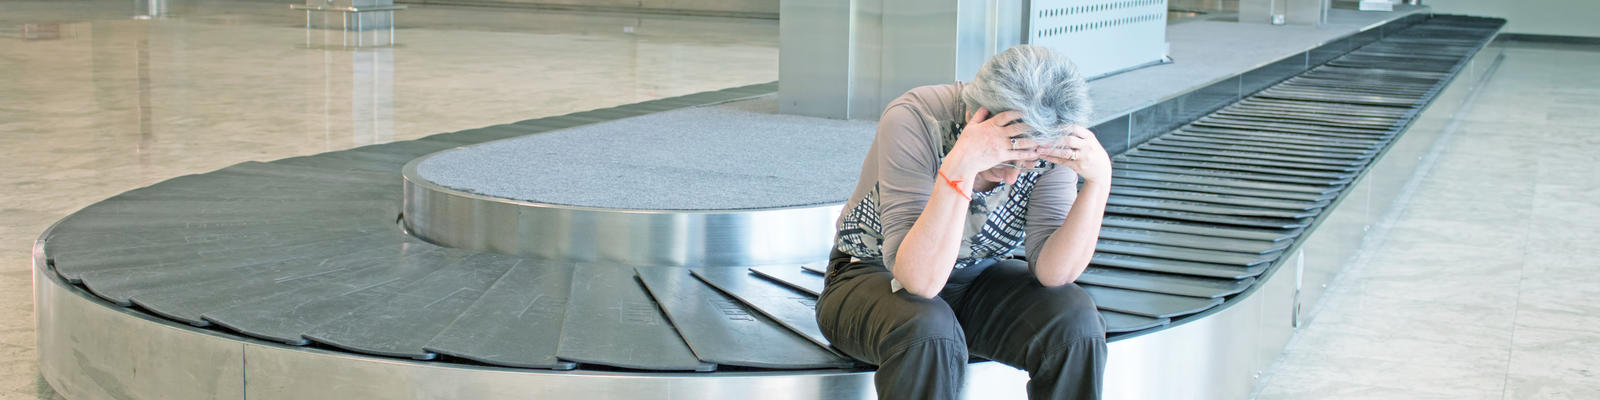 8ee204490f35 Help! My Luggage Is Lost. What Should I Do? - Cruise Critic